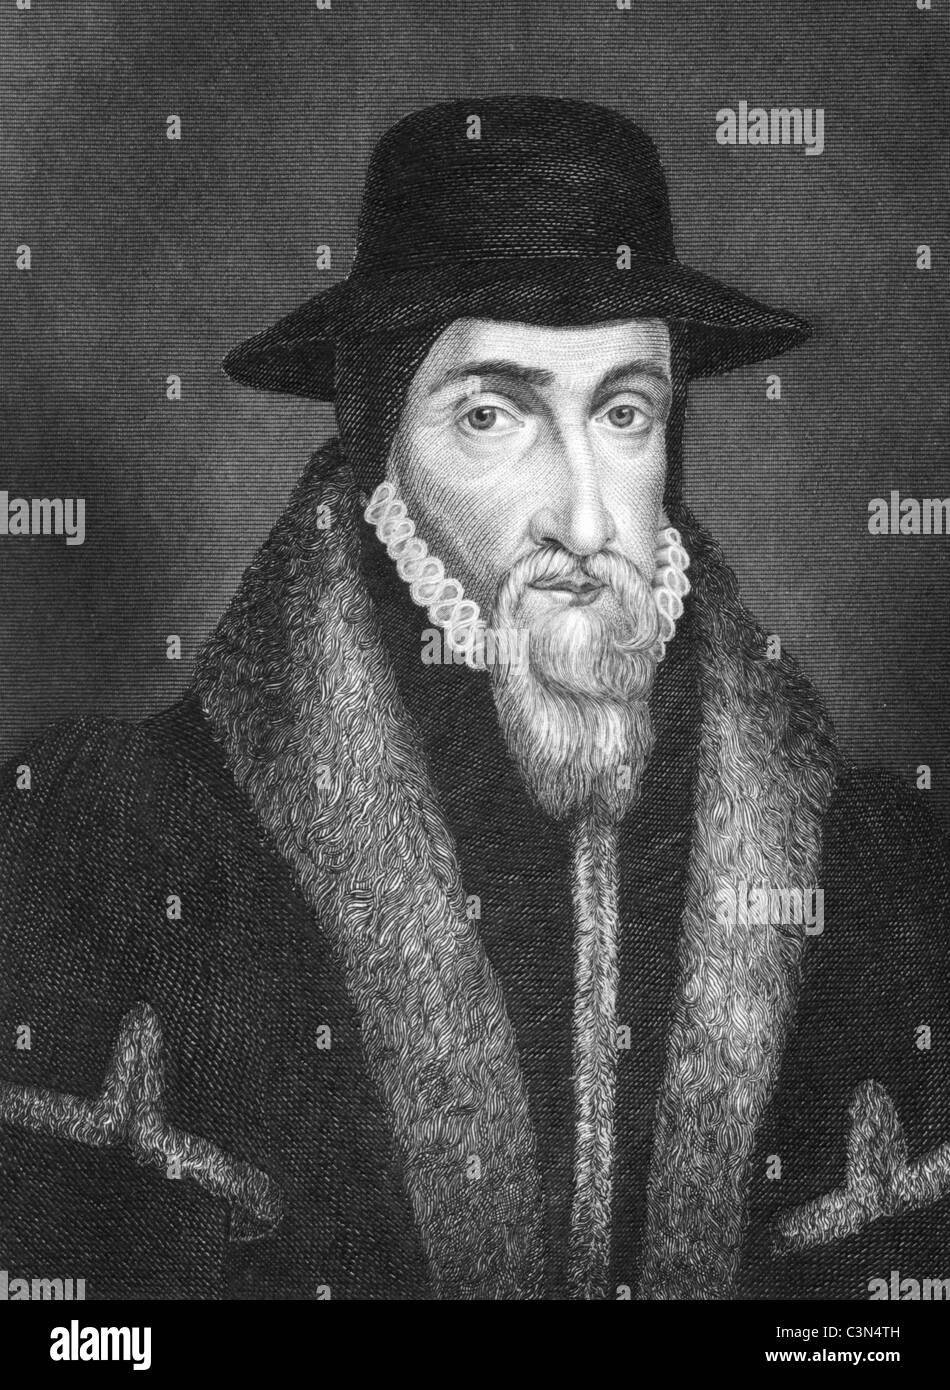 John Foxe (1517-1587) on engraving from 1844. English historian and martyrologist. Published by J.Tallis & Co. - Stock Image